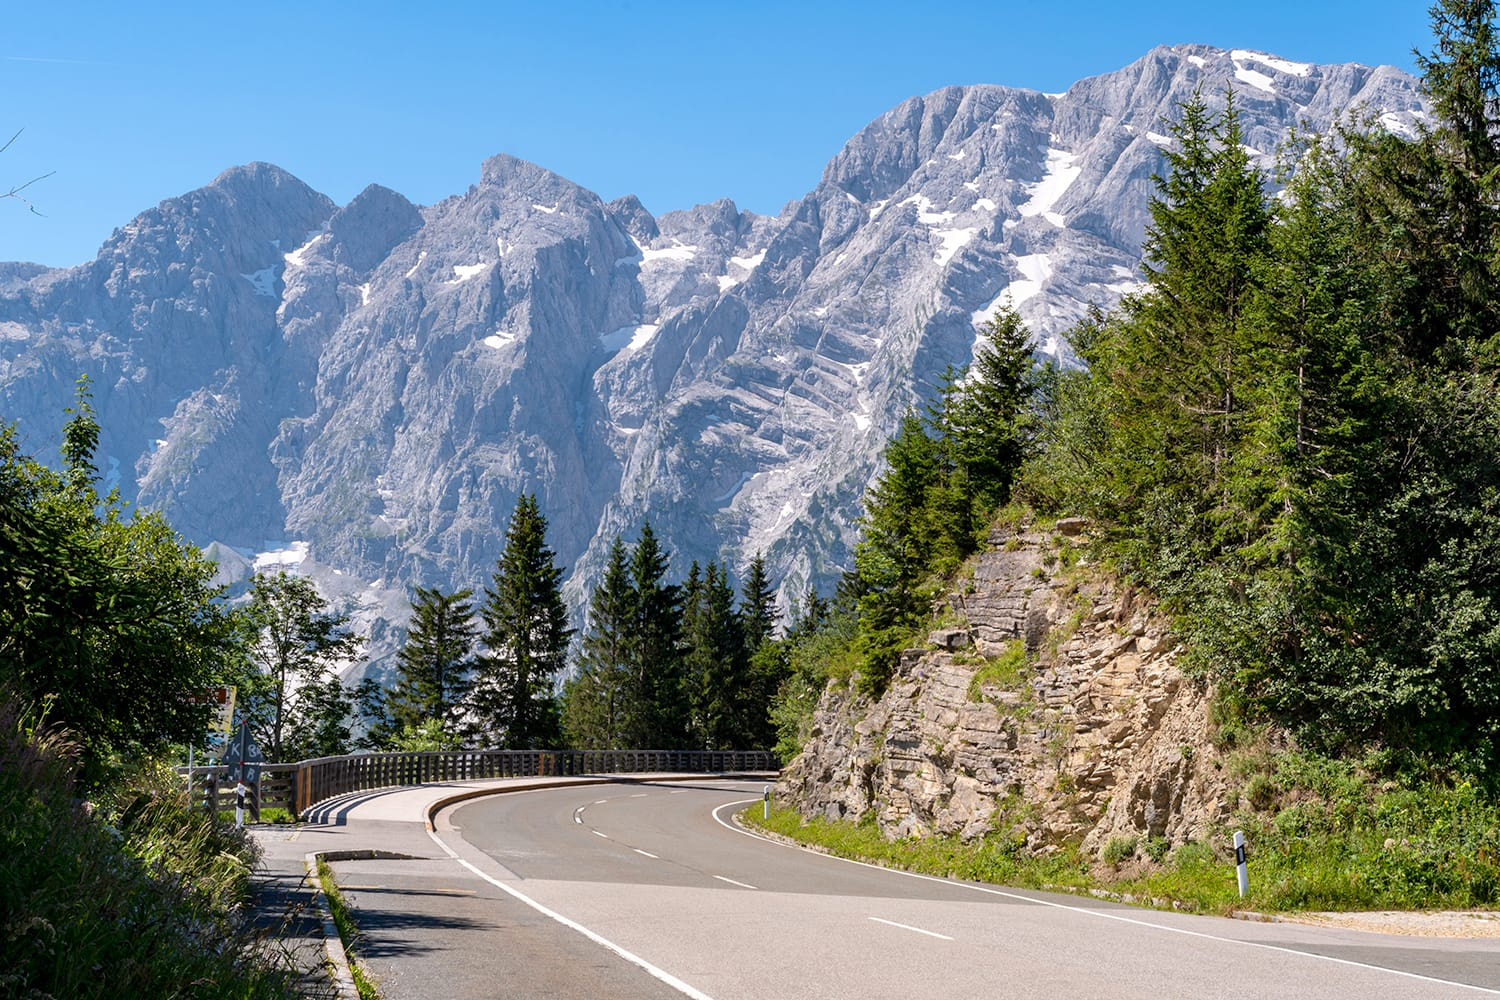 Rossfeld Panorama Strasse Alpine pass road in Berchtesgaden National Park in Bavaria, Germany